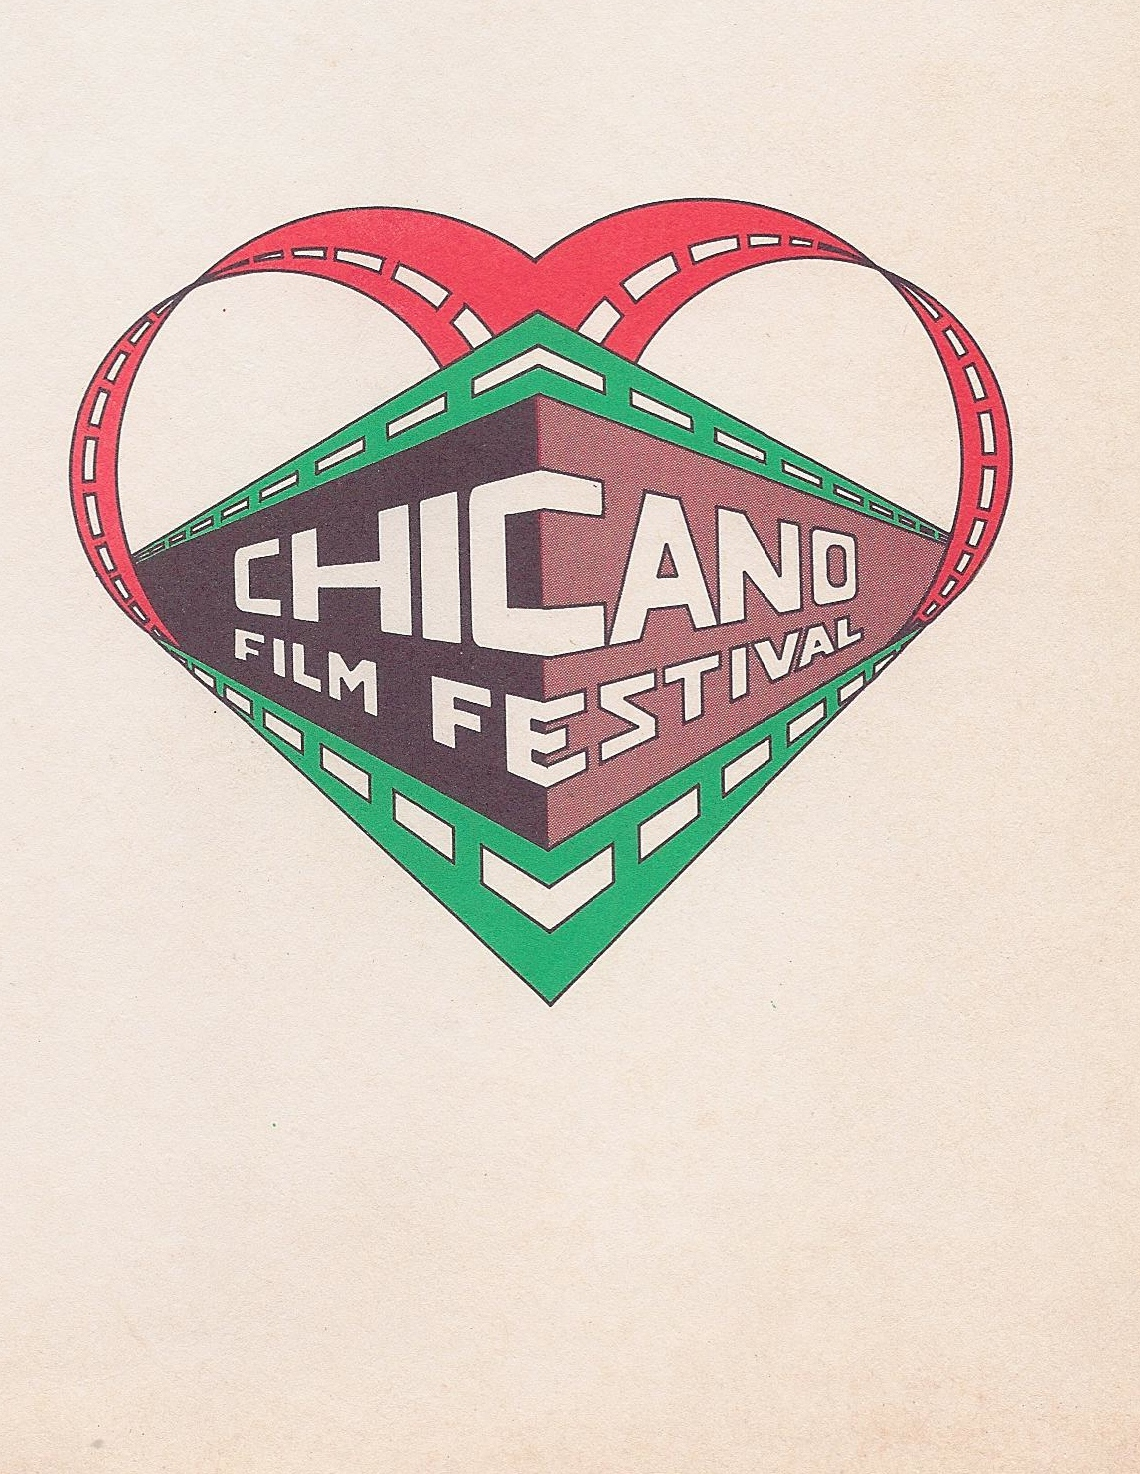 The logo for the second annual Chicano Film Festival, designed by local artist artist Ernest Montoya.